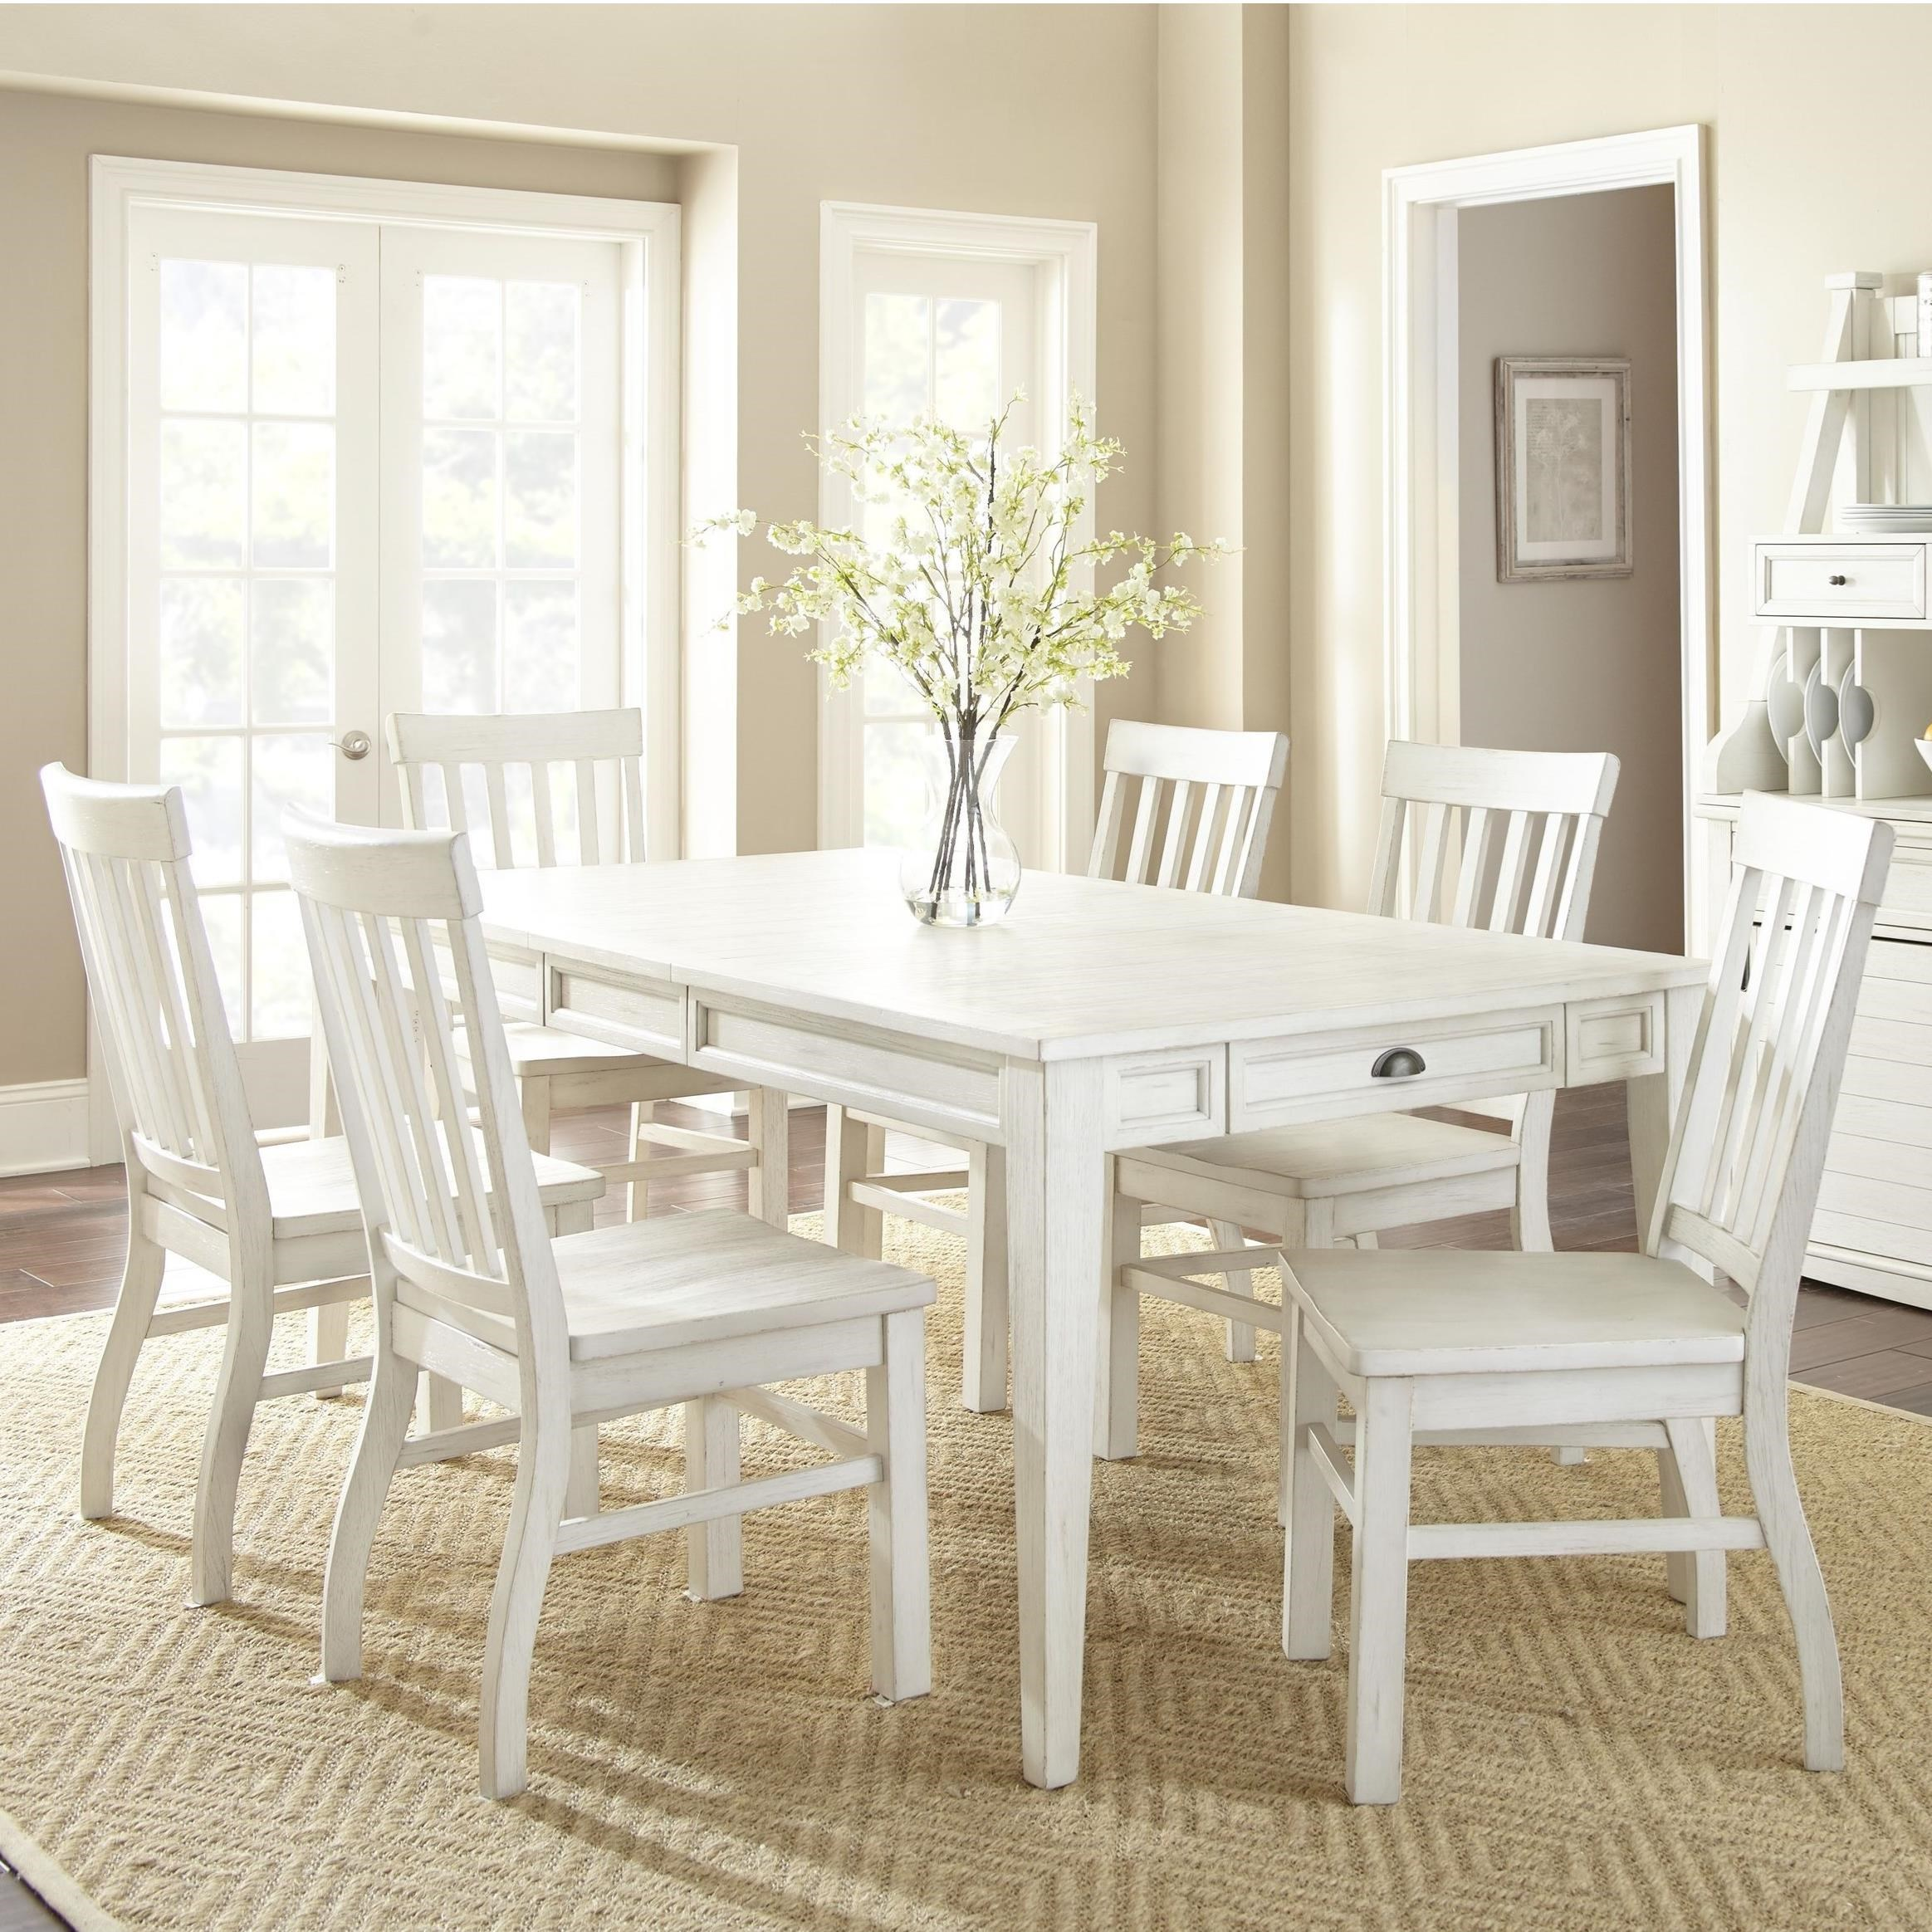 Steve Silver Cayla 7 Piece Farmhouse Dining Set With Table Storage